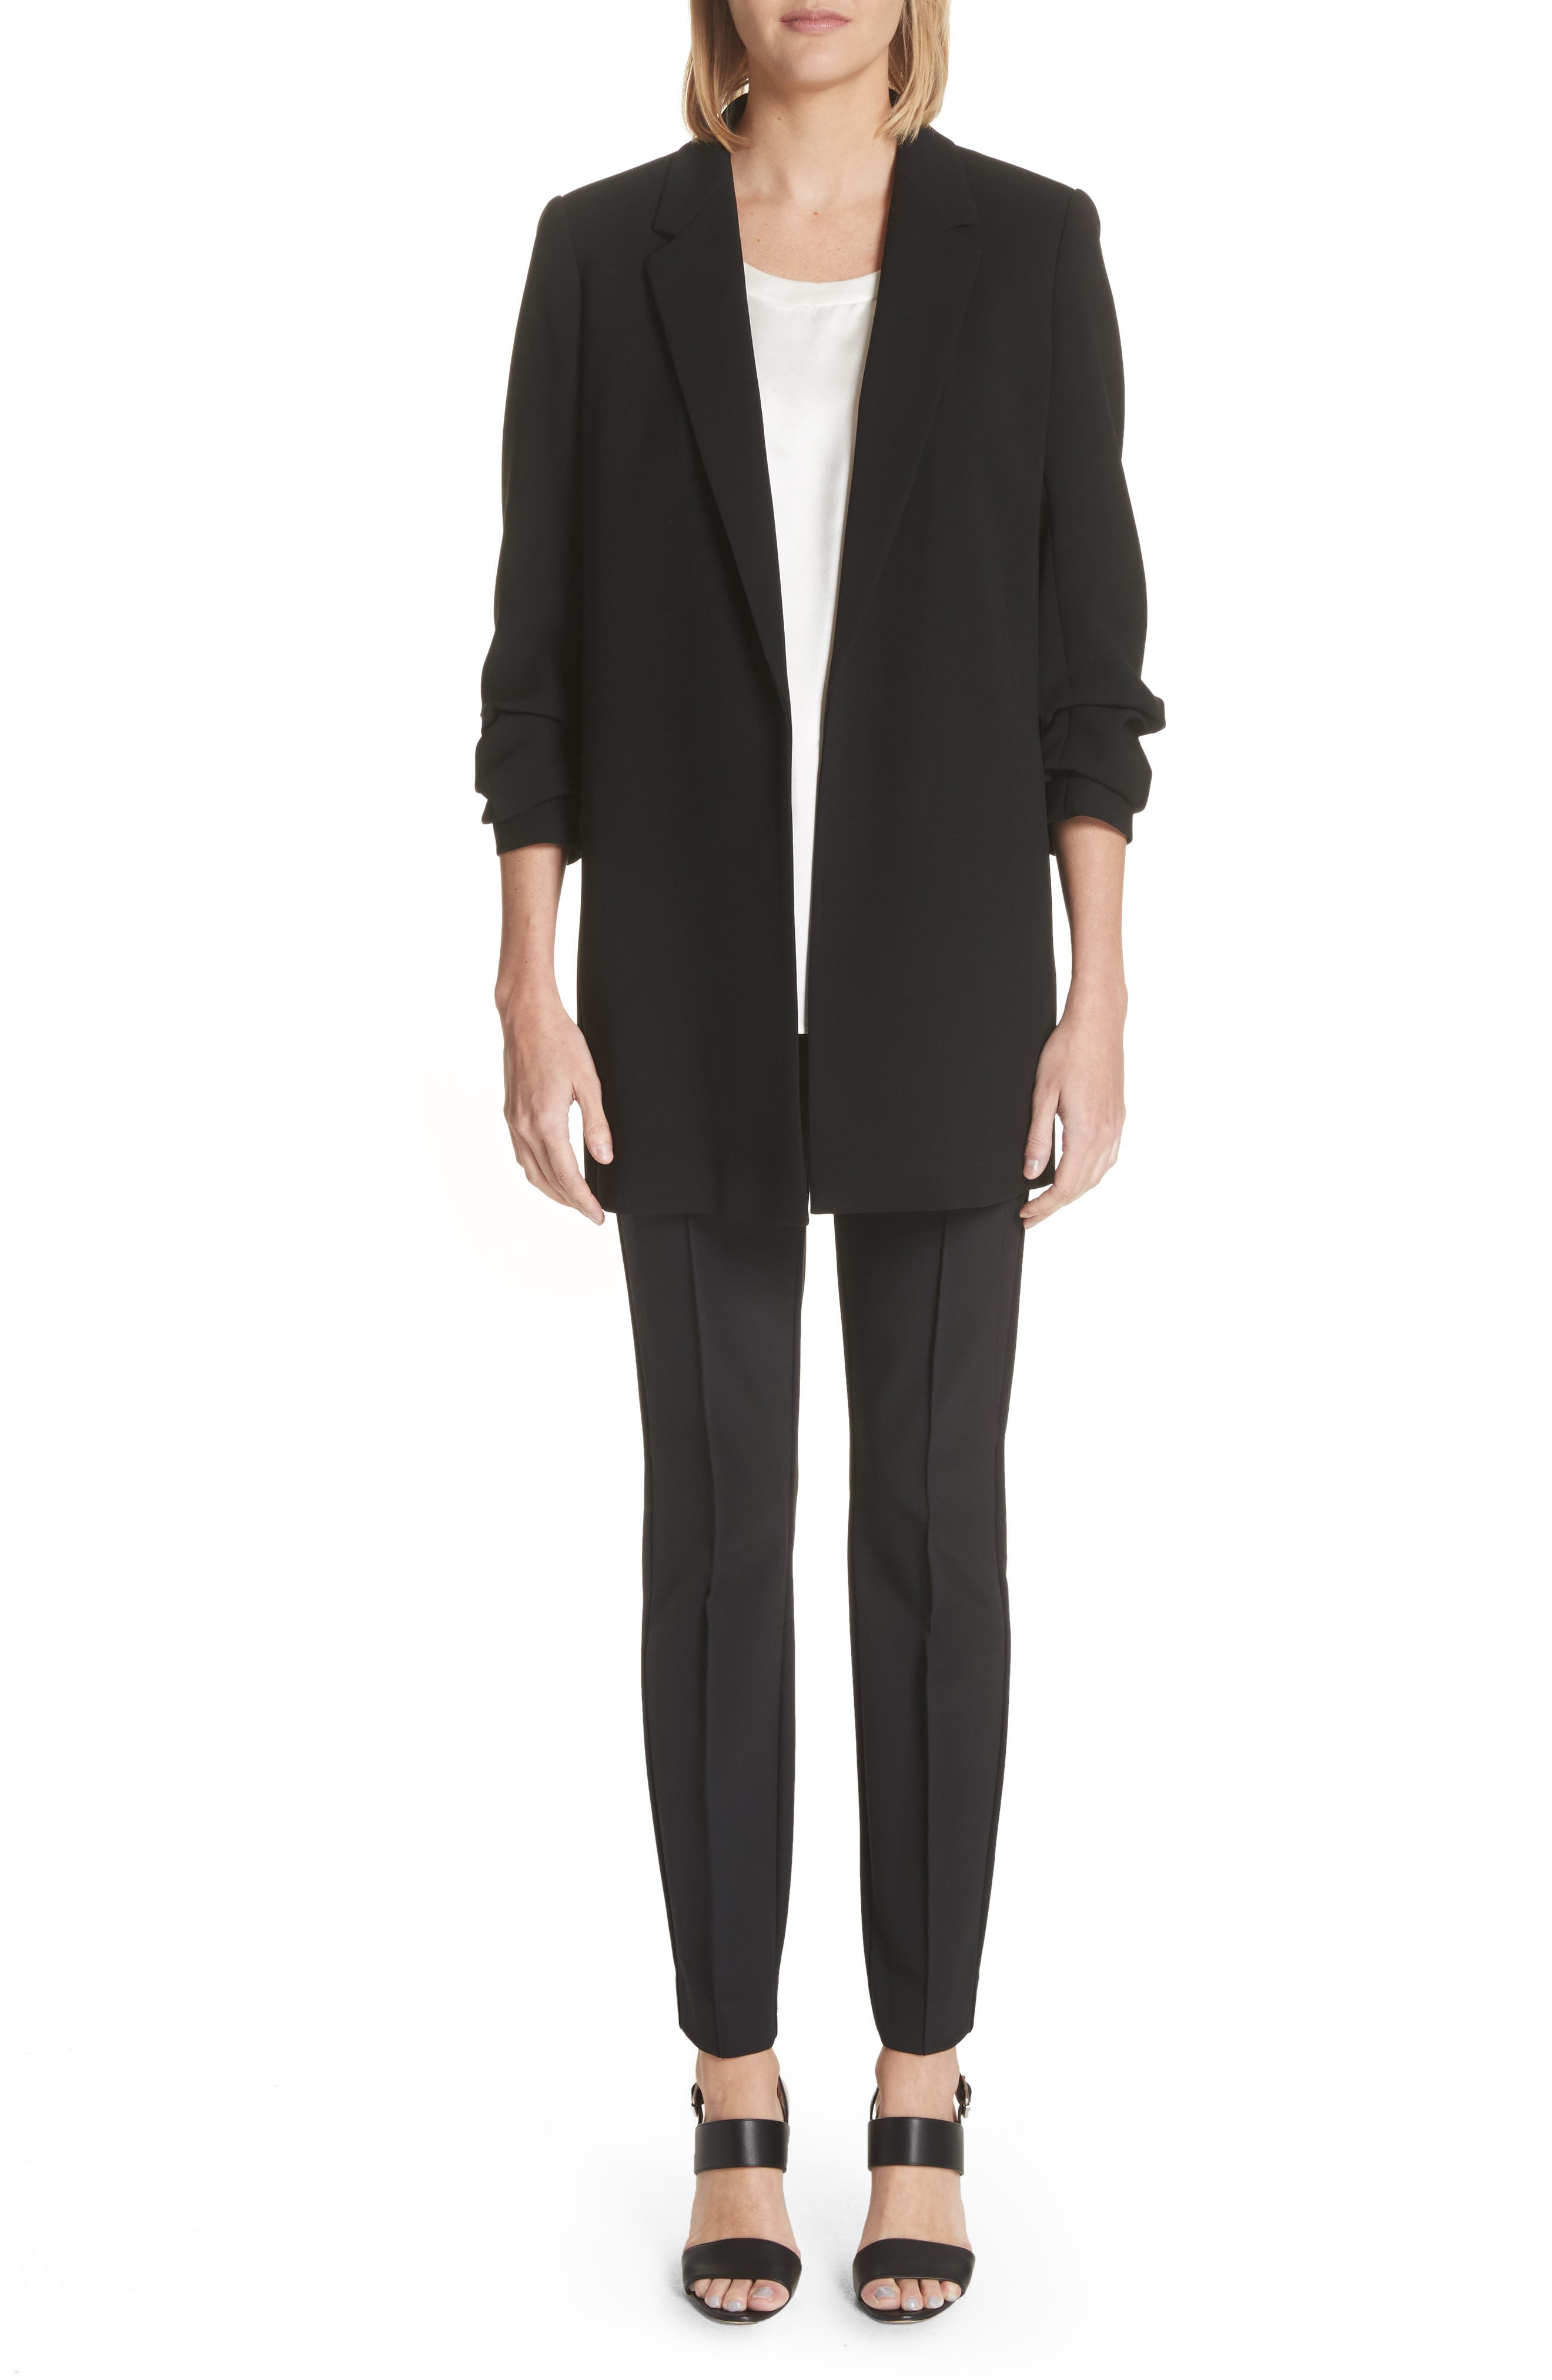 LAFAYETTE 148 NEW YORK, 'Gramercy' Acclaimed Stretch Pants, Alternate thumbnail 4, color, BLACK